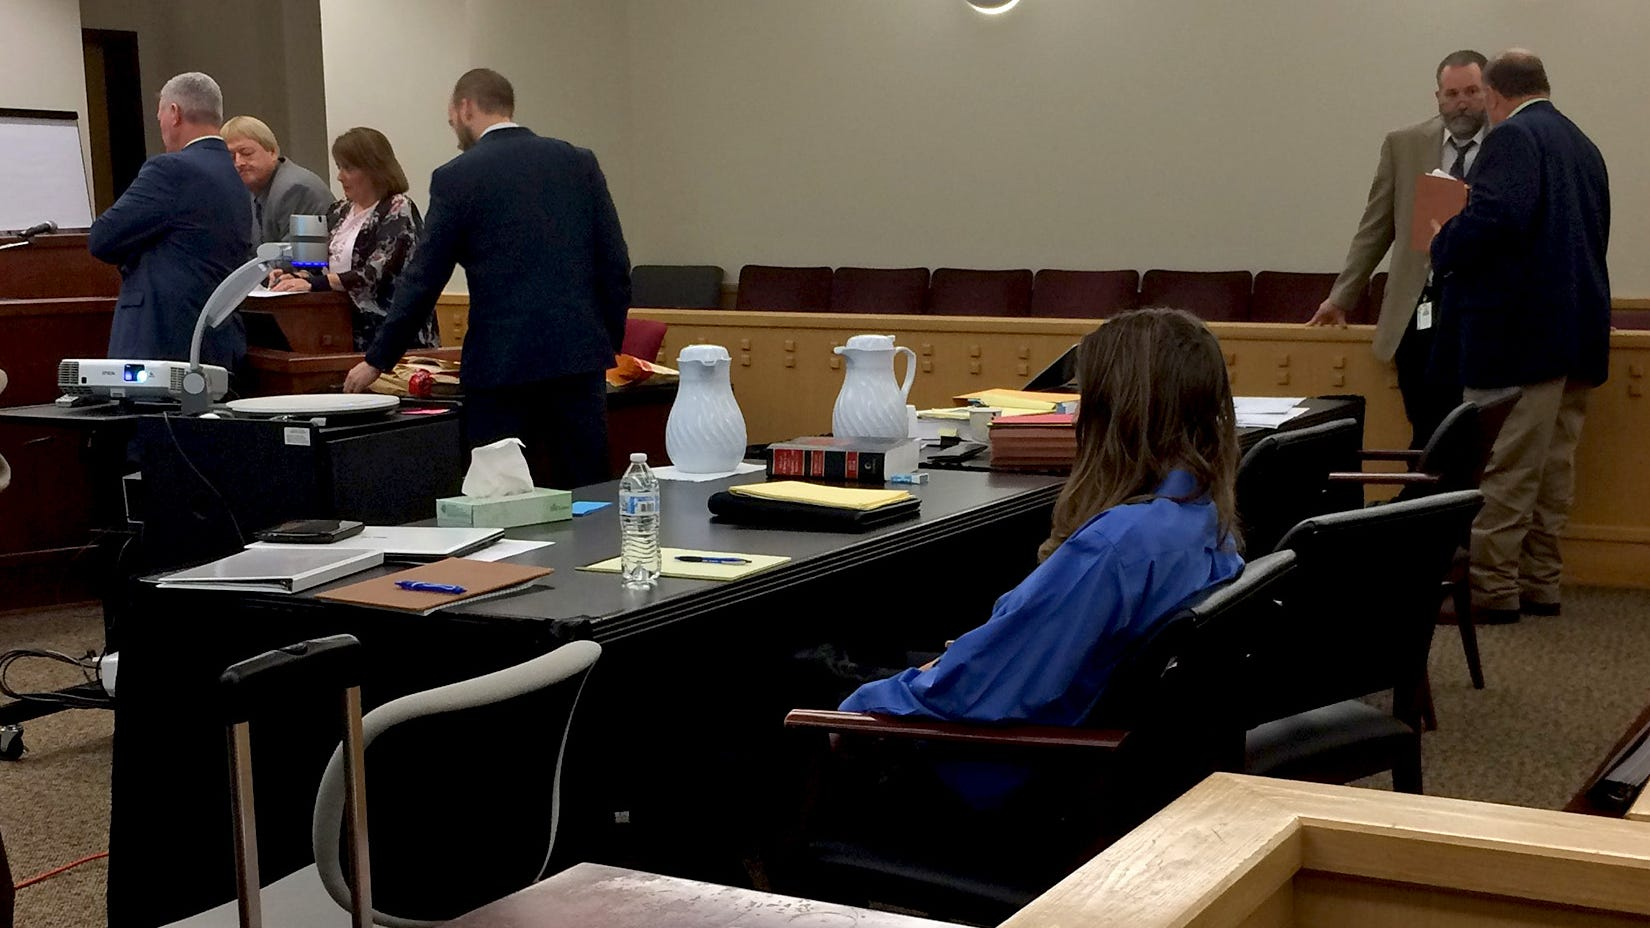 Medical examiner testifies about autopsy photos in Kody Lott trial